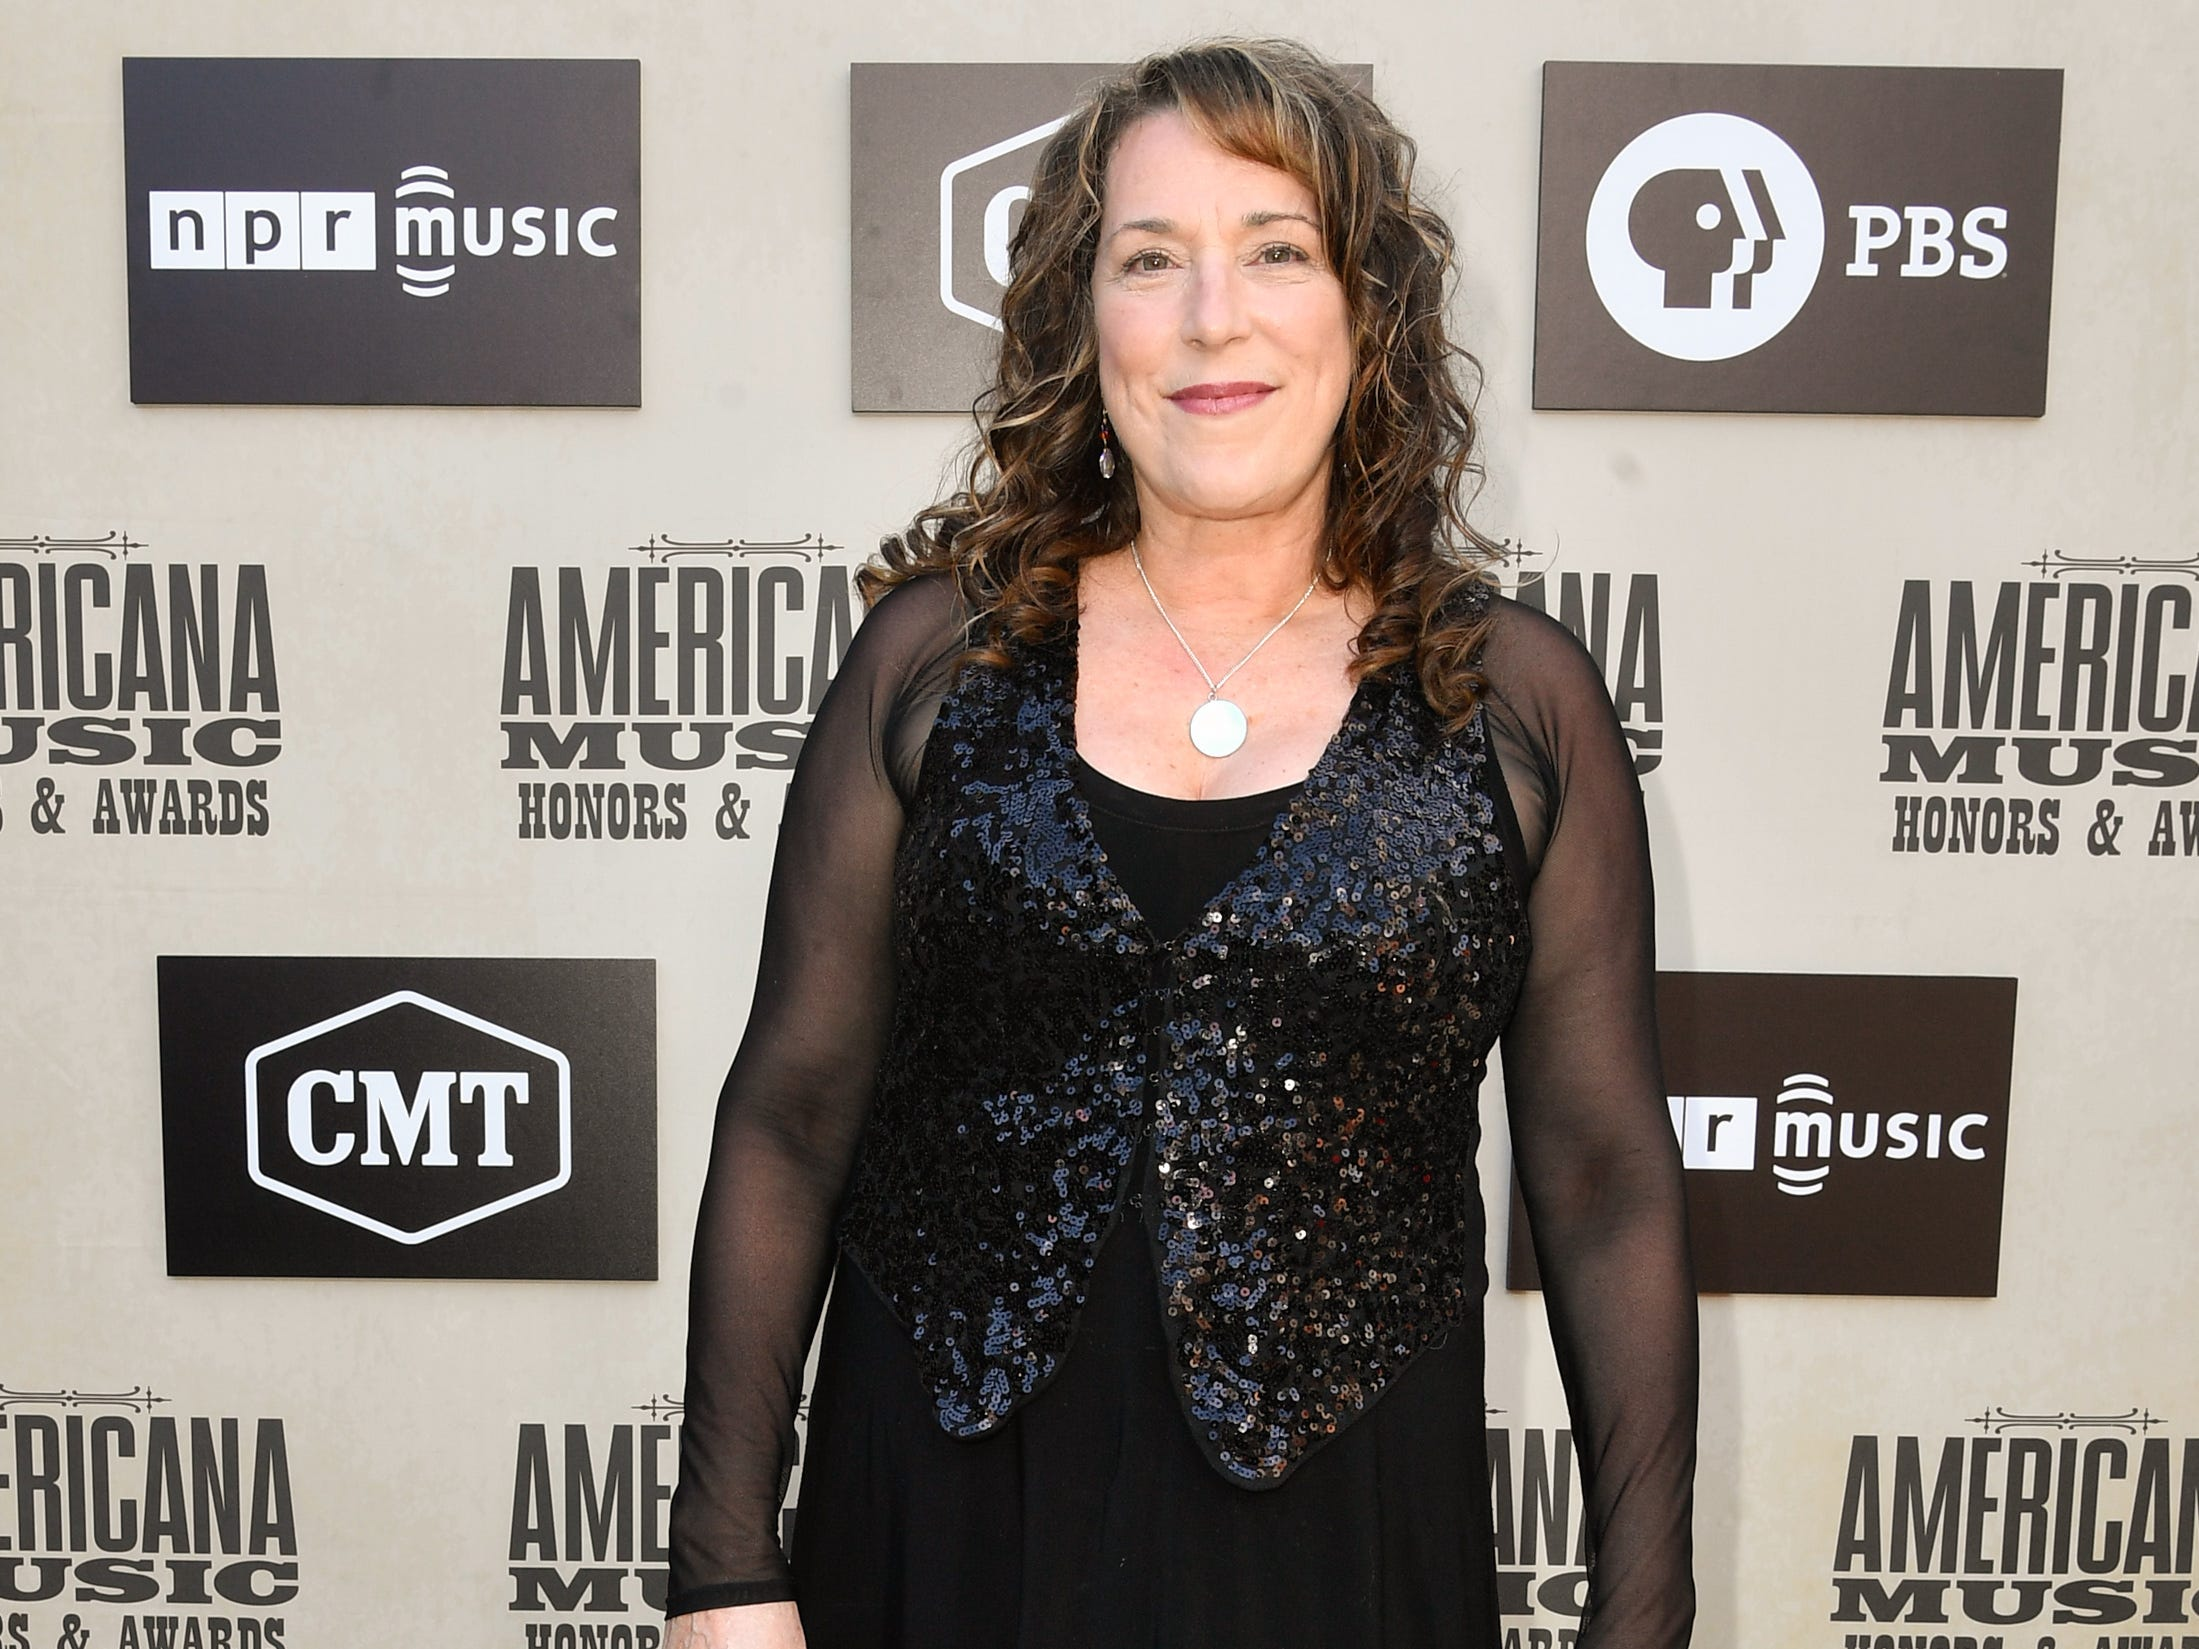 Beth Nielsen Chapman poses on the red carpet before the 2018 Americana Honors and Awards show at the Ryman Auditorium in Nashville, Tenn., Wednesday, Sept. 12, 2018.